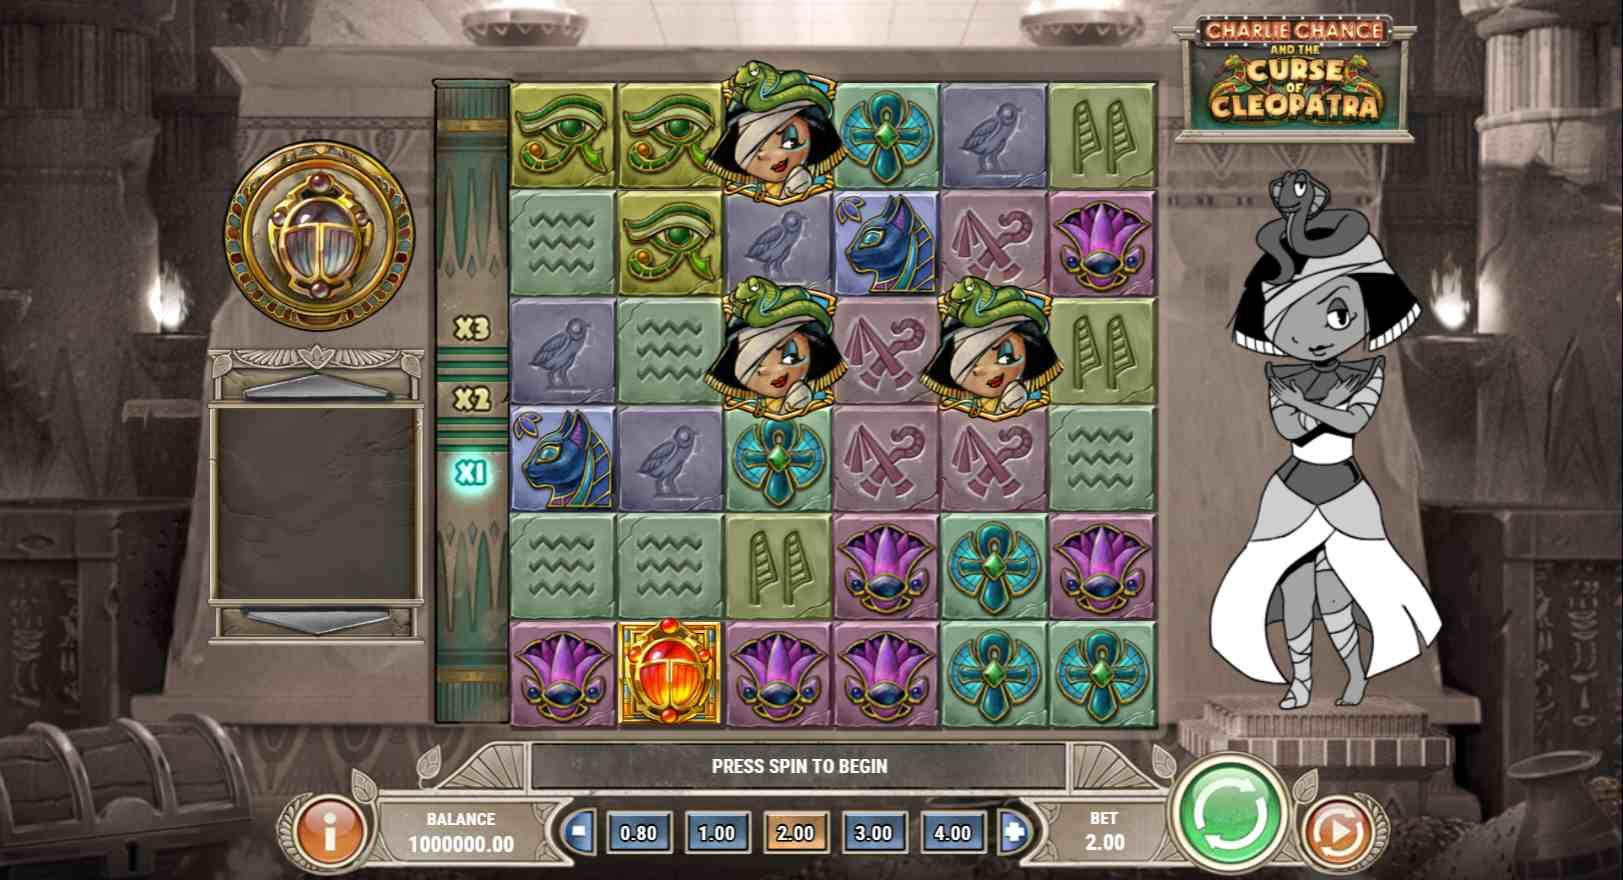 Charlie Chance and the Curse of Cleopatra Gameplay